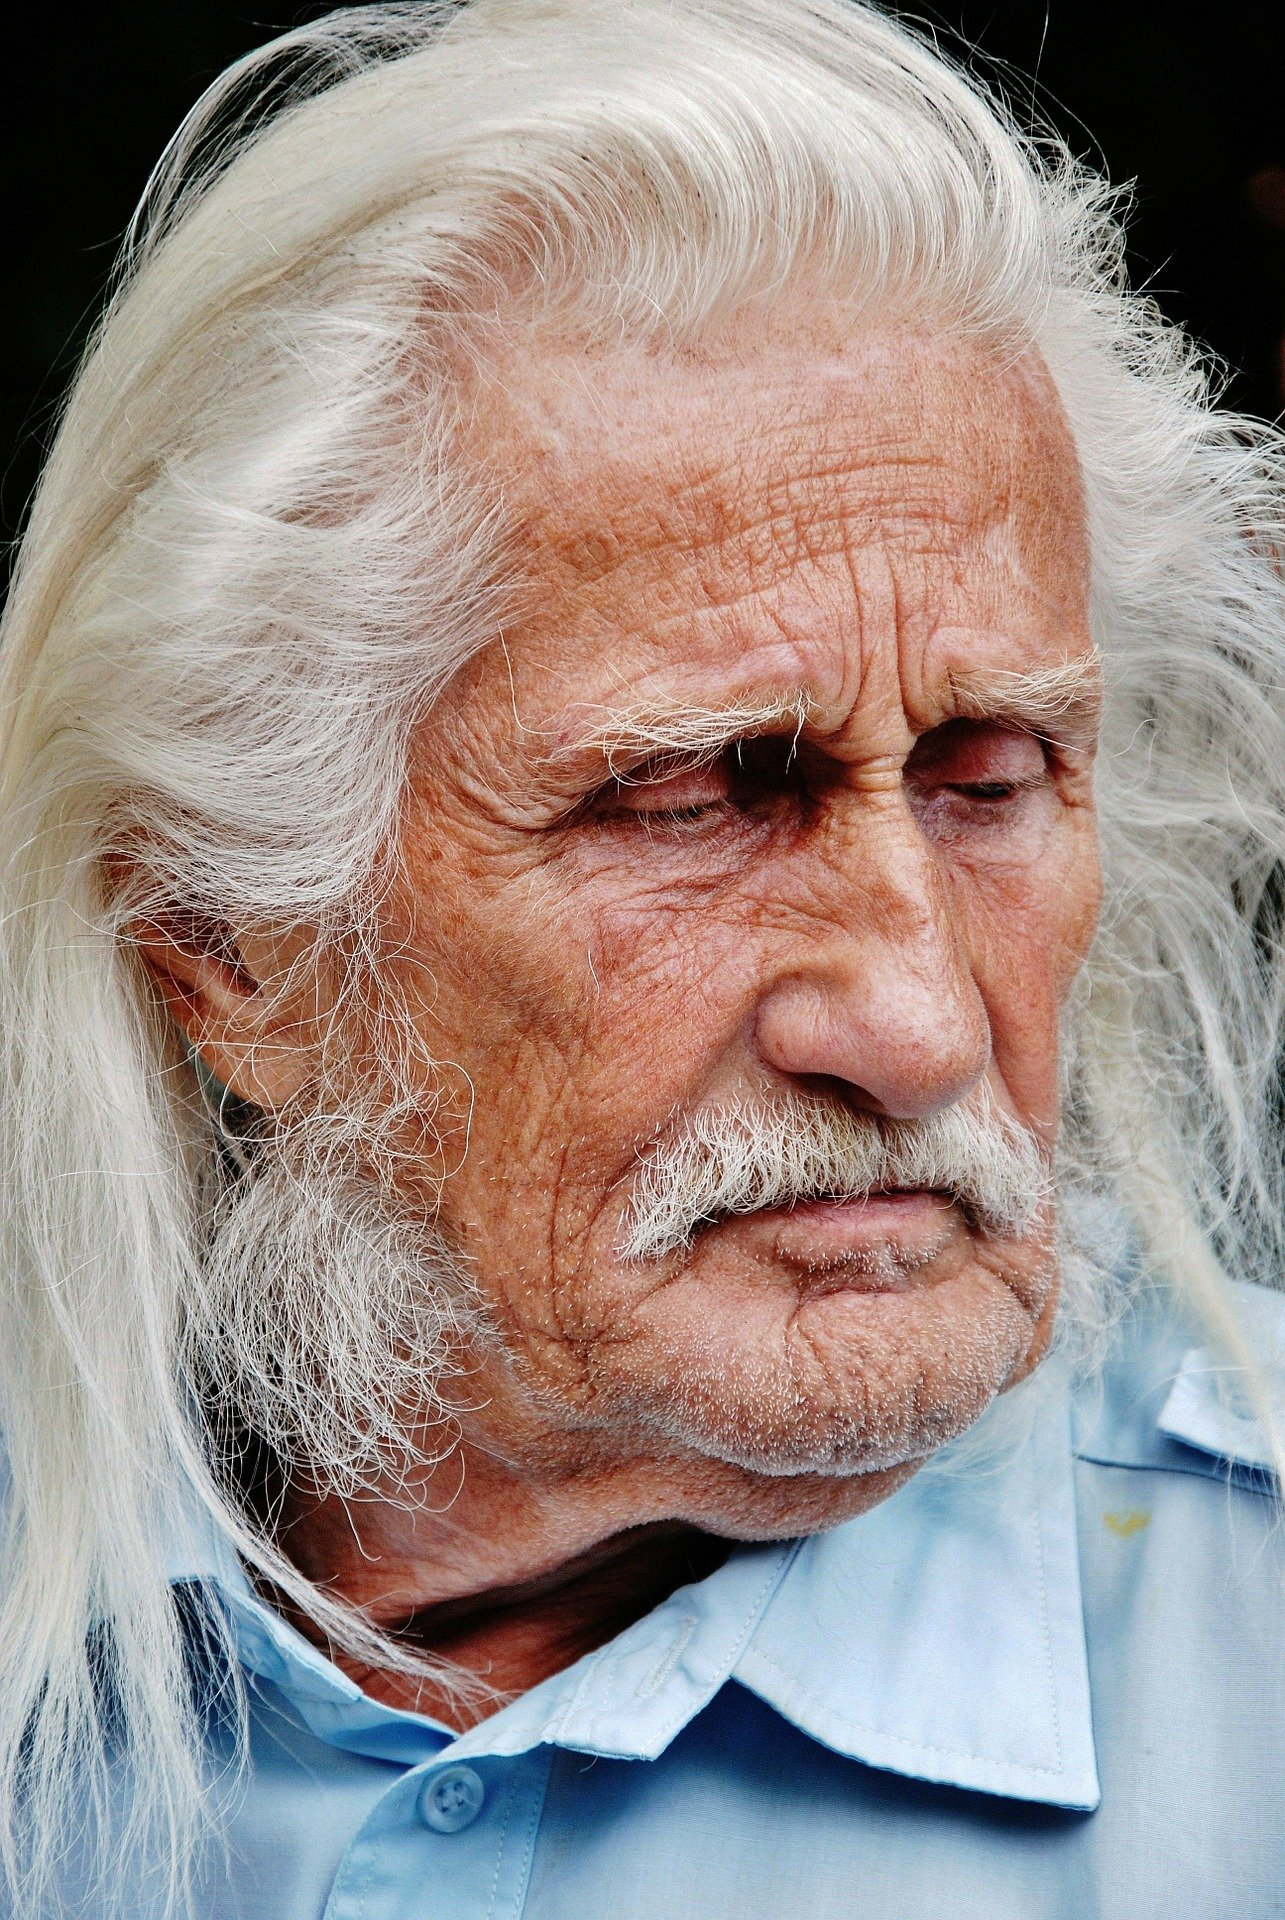 An old man with a sad expression on his face   Photo: Pixabay